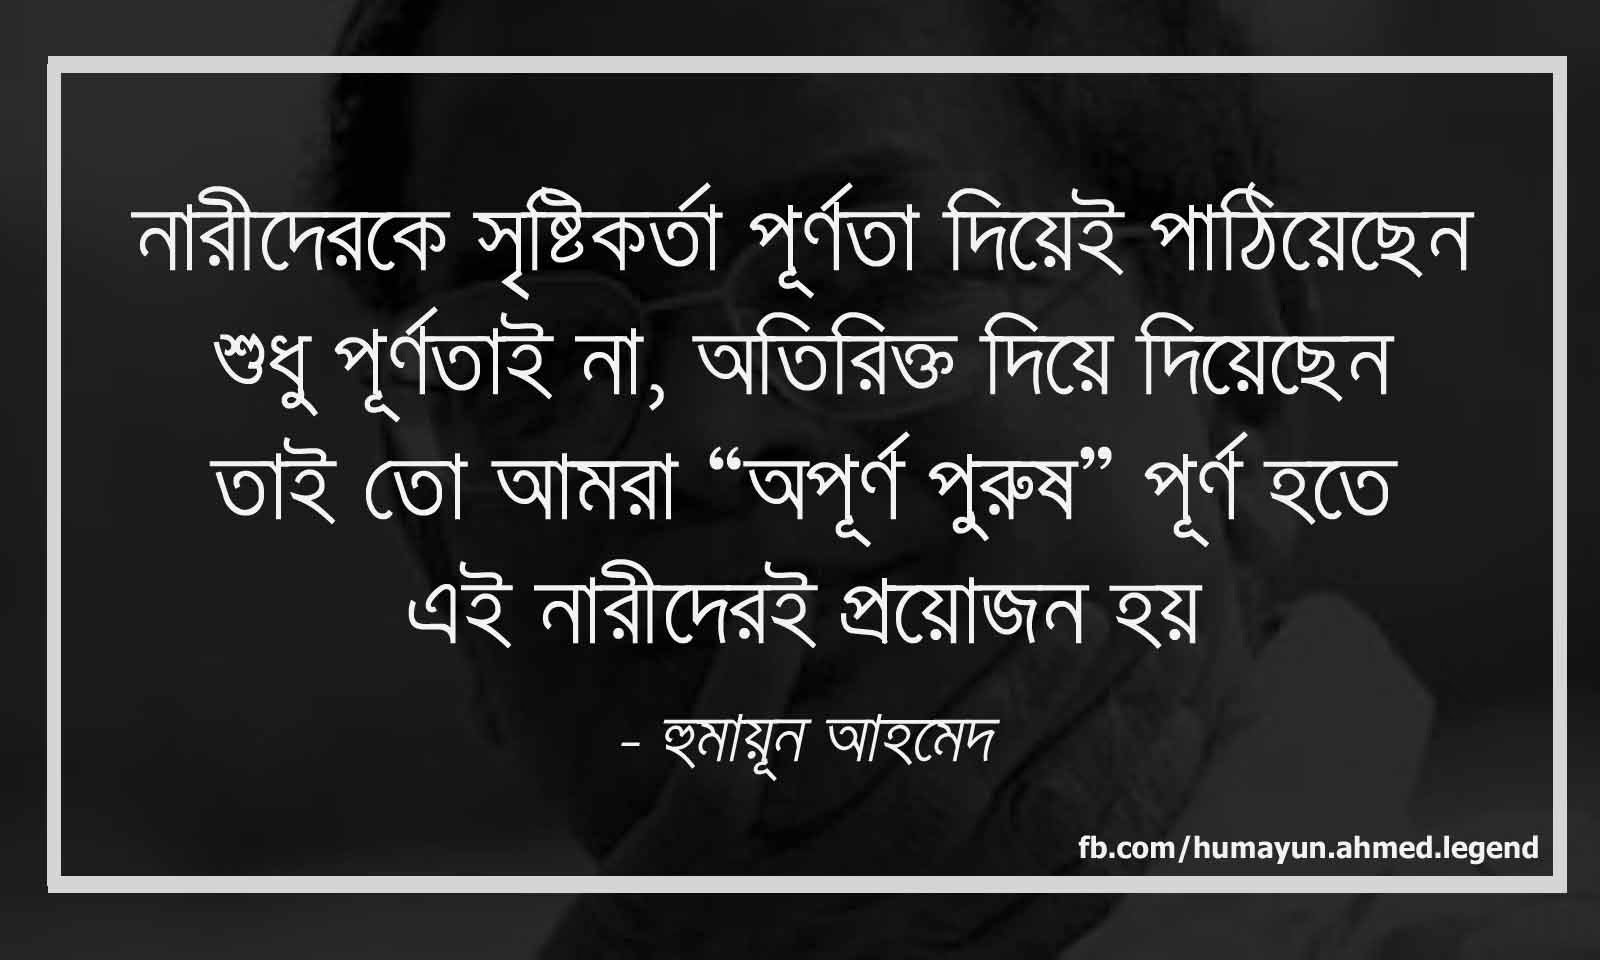 Love Quotes For Women Heroes Saying Humayun Ahmed's Quotes About Girls And Women